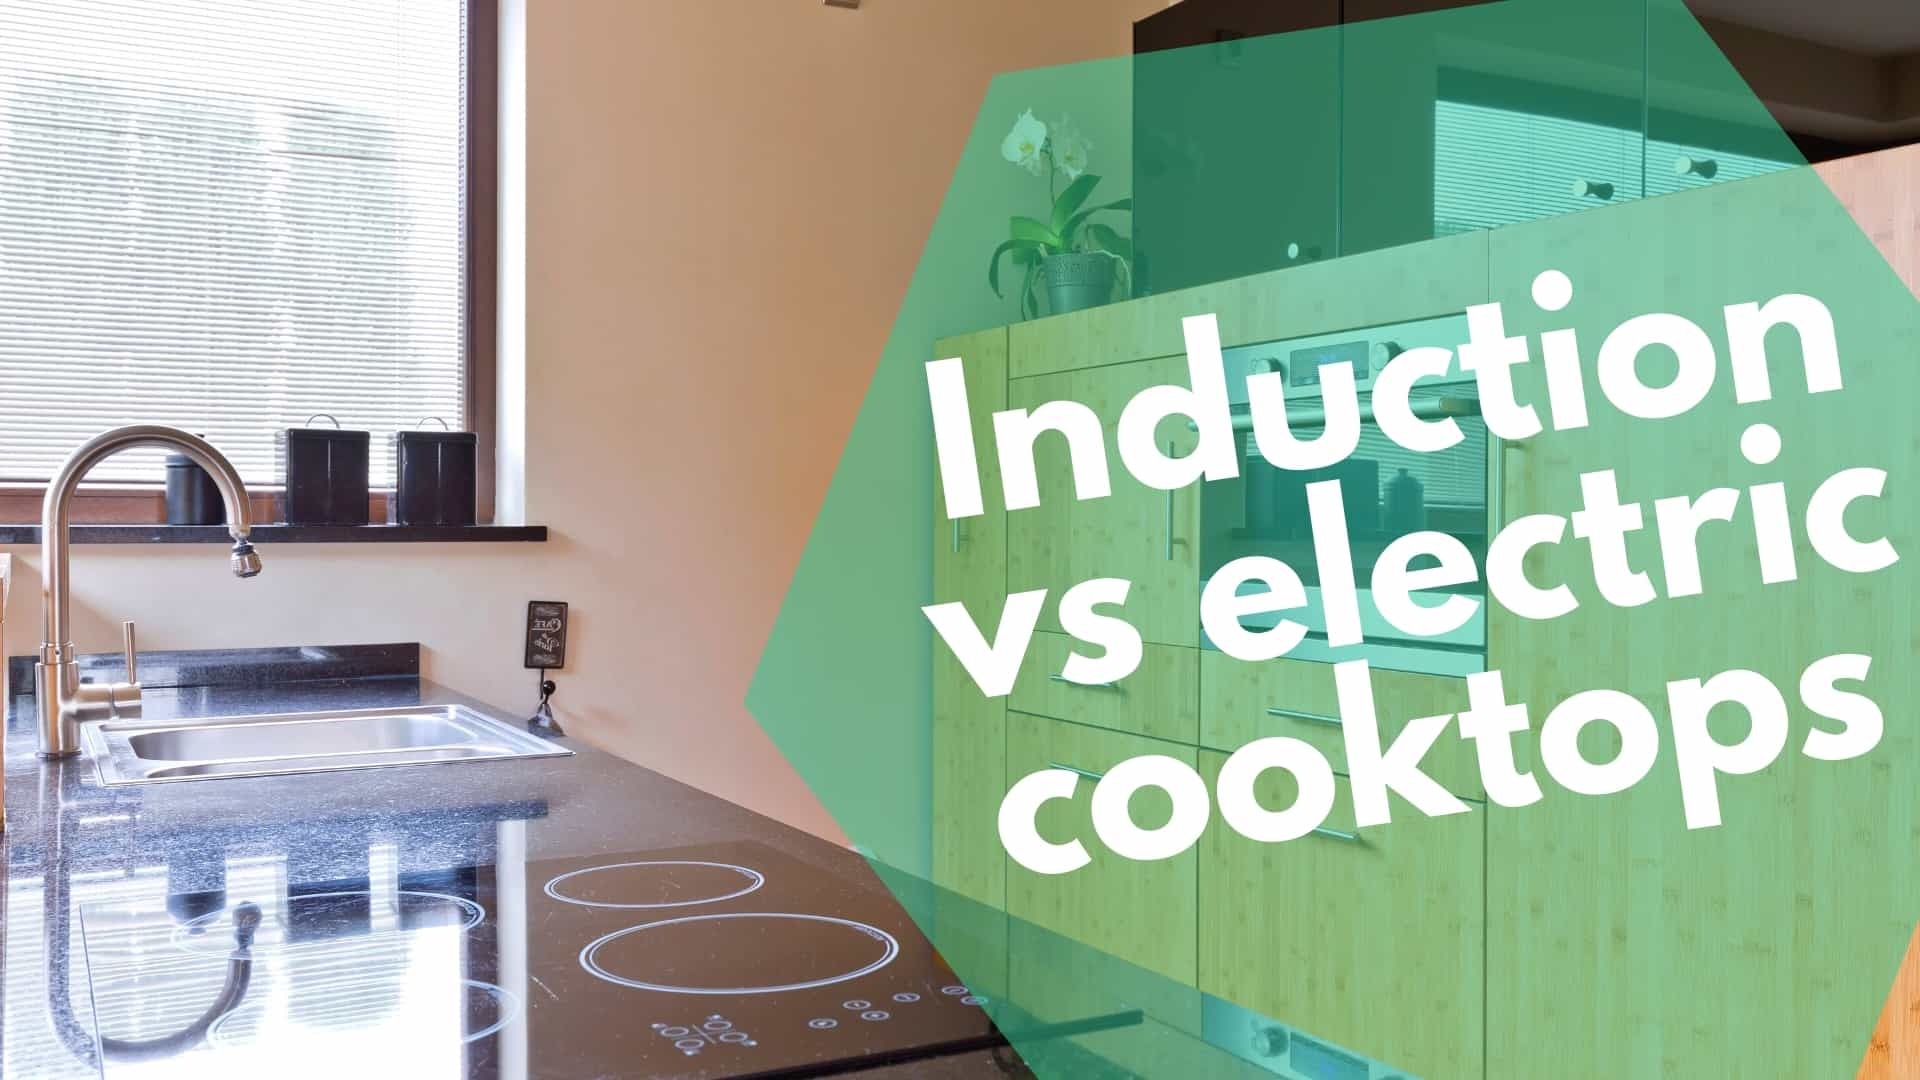 Induction vs electric cooktops